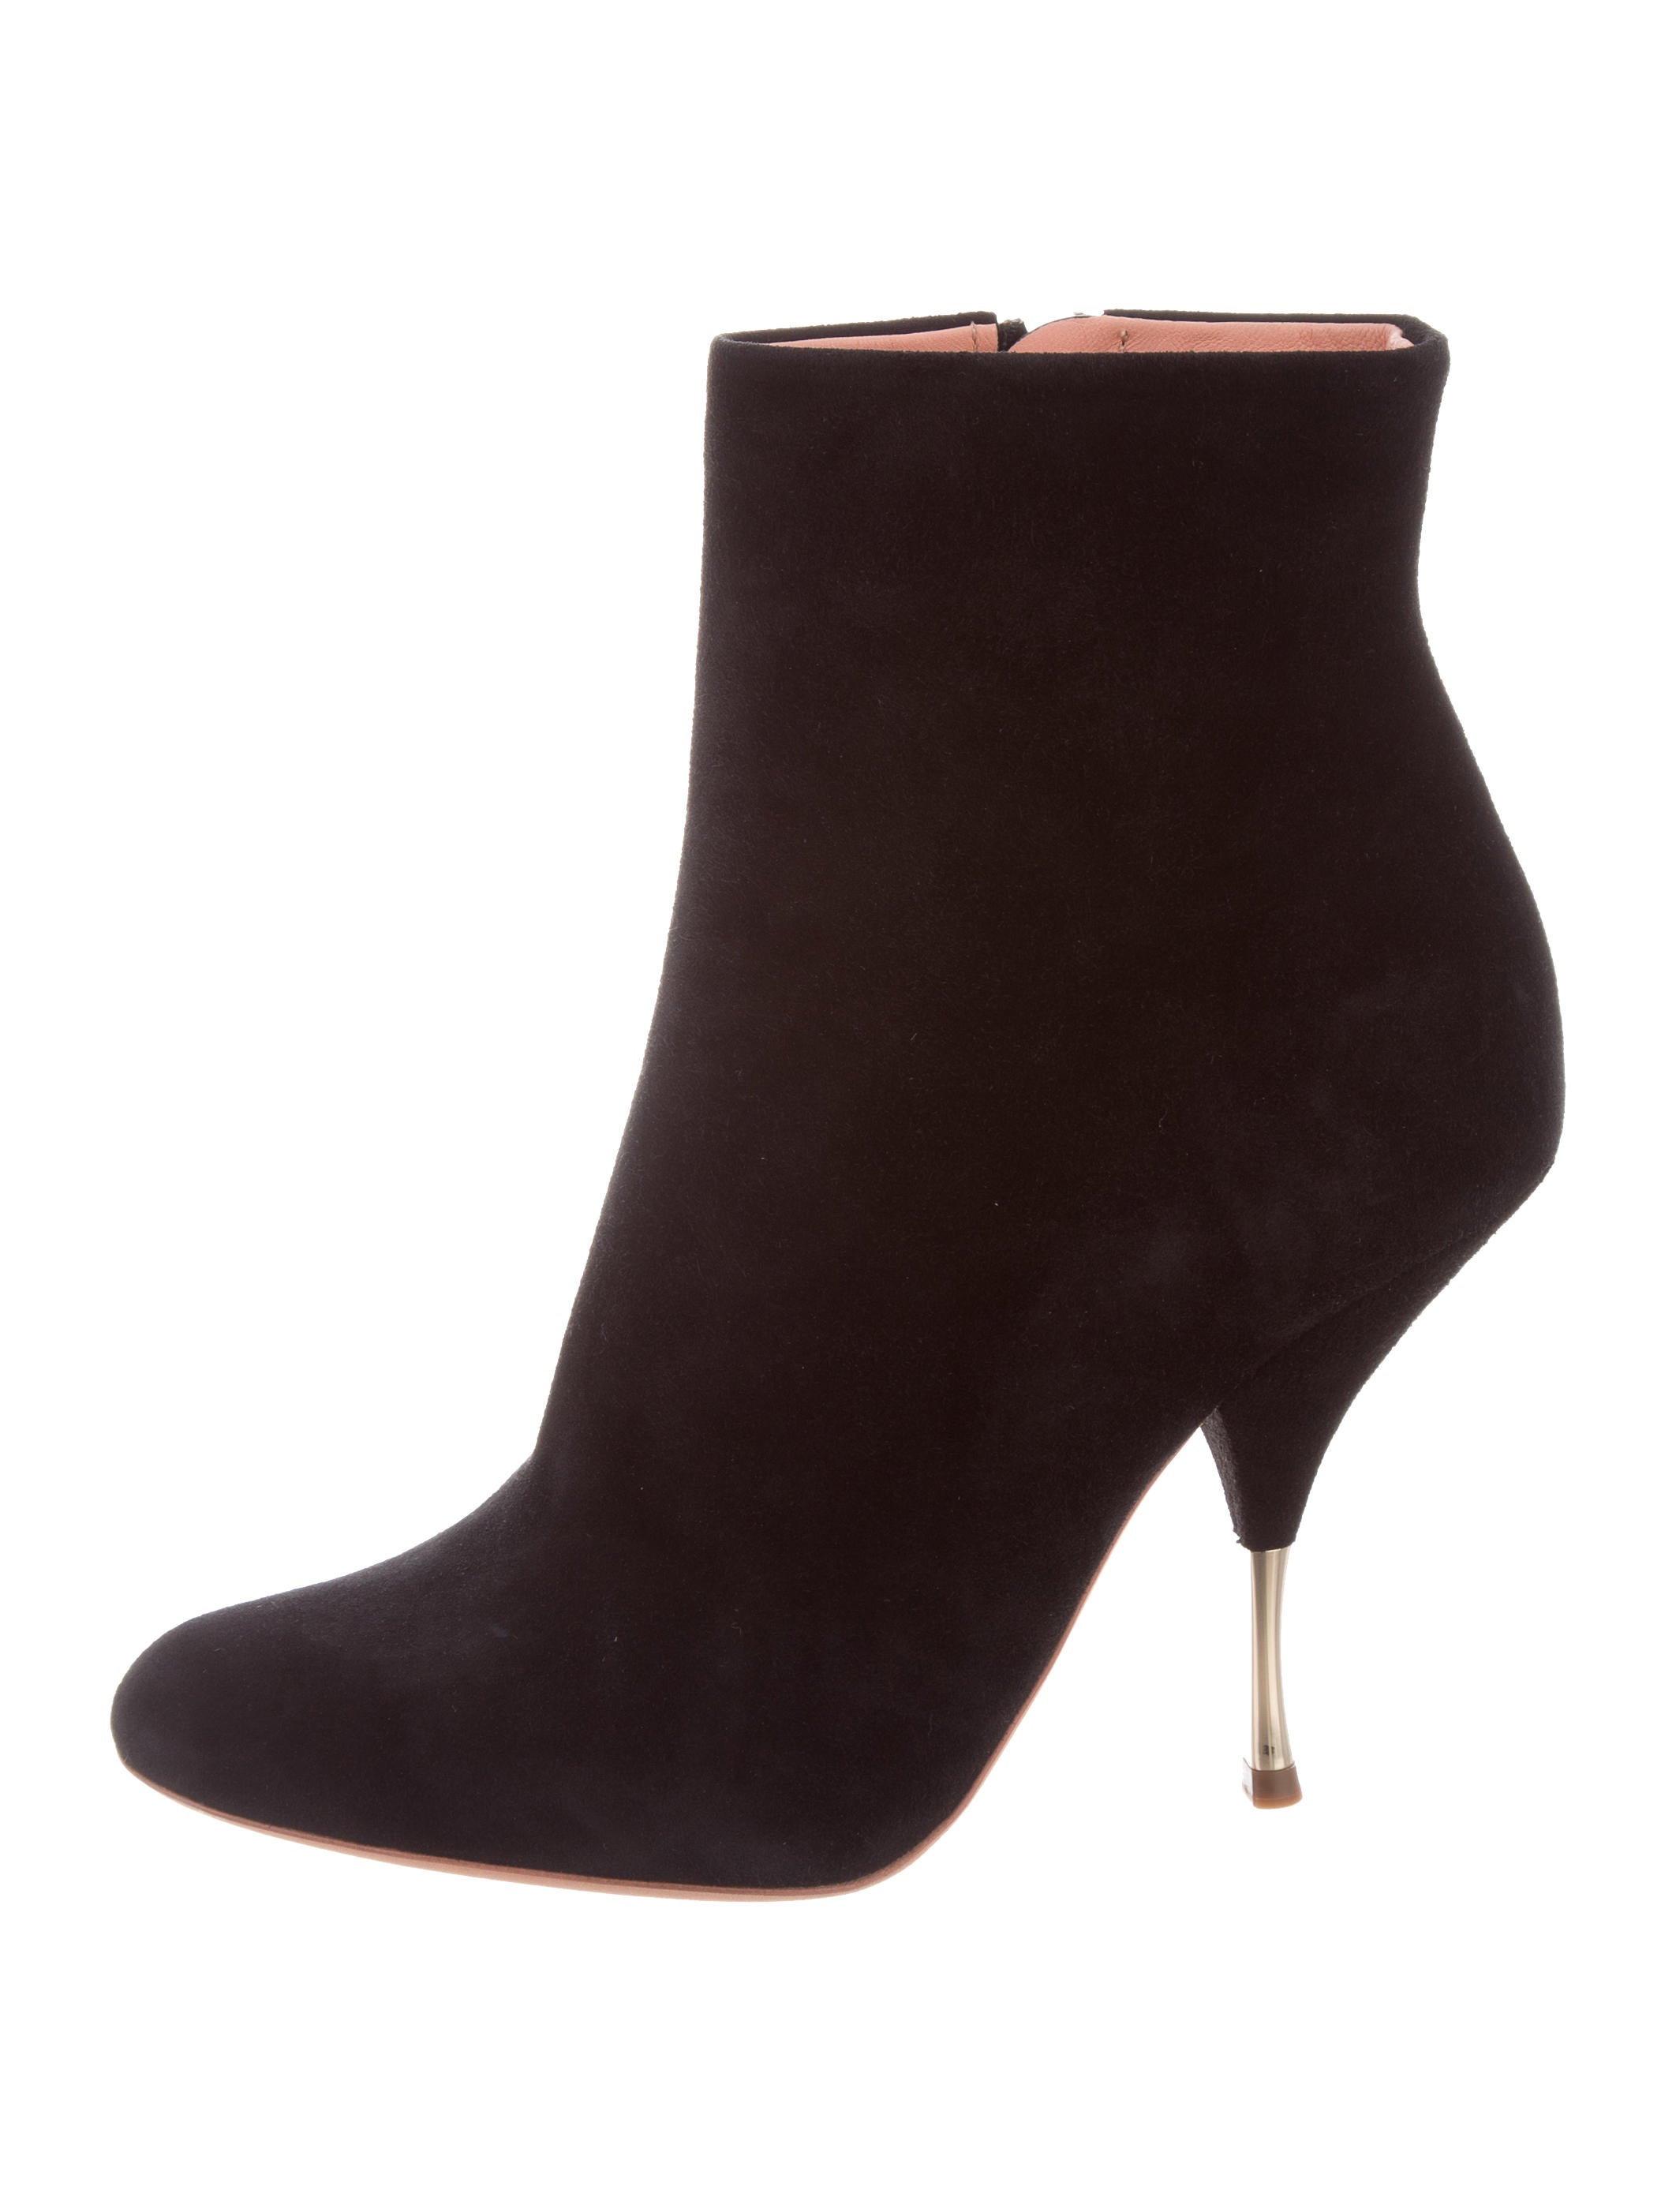 Rochas Suede Pointed-Toe Ankle Boots